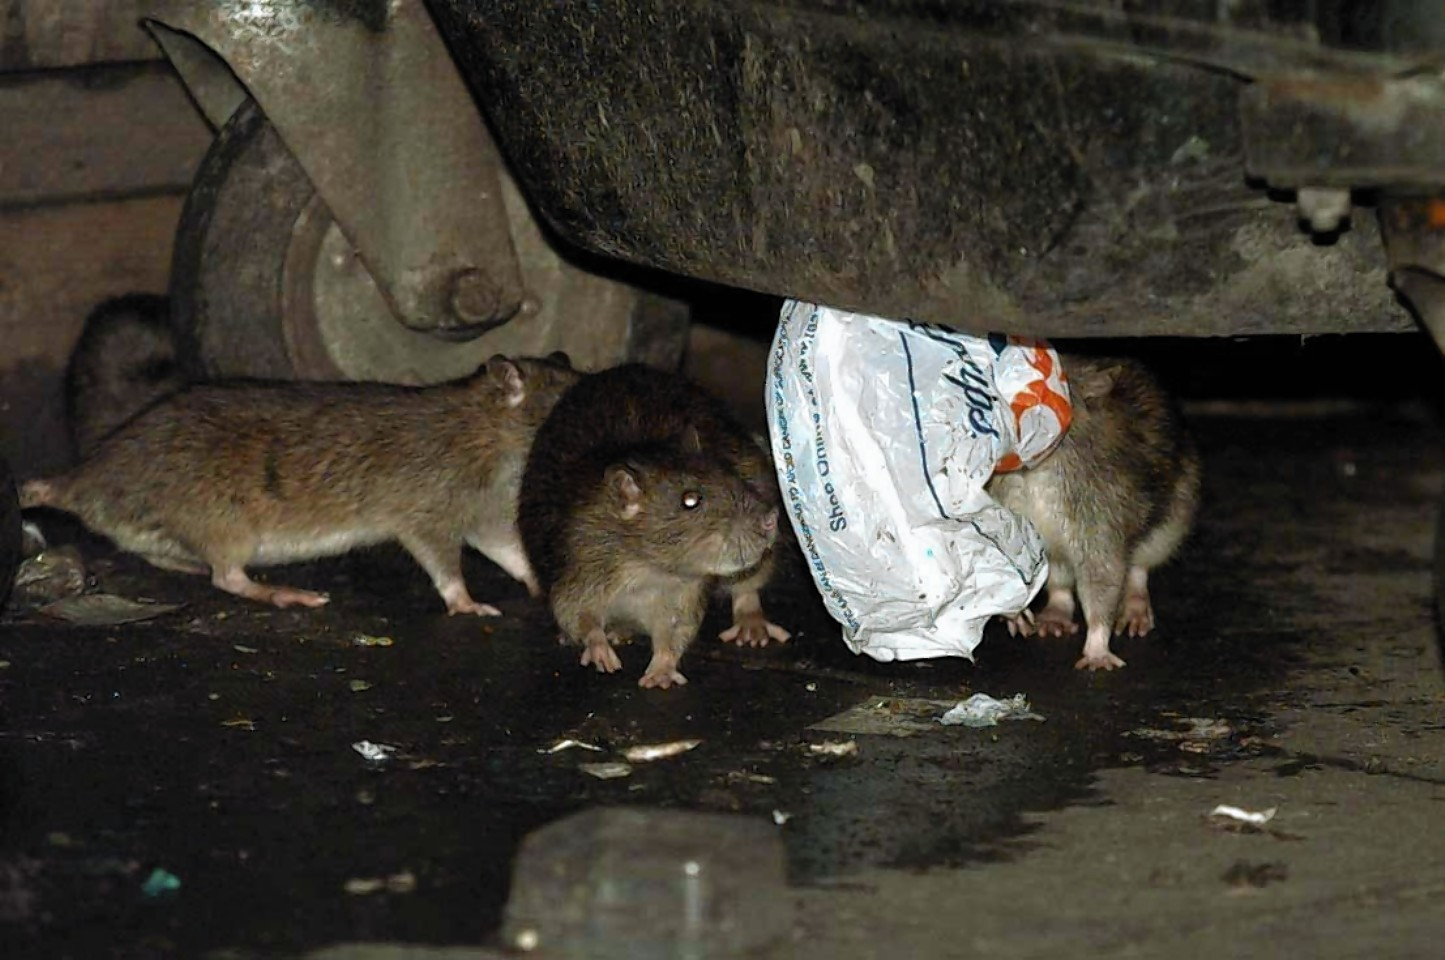 There are fears bin collection changes could mean an increase in chances of people contracting diseases from rats